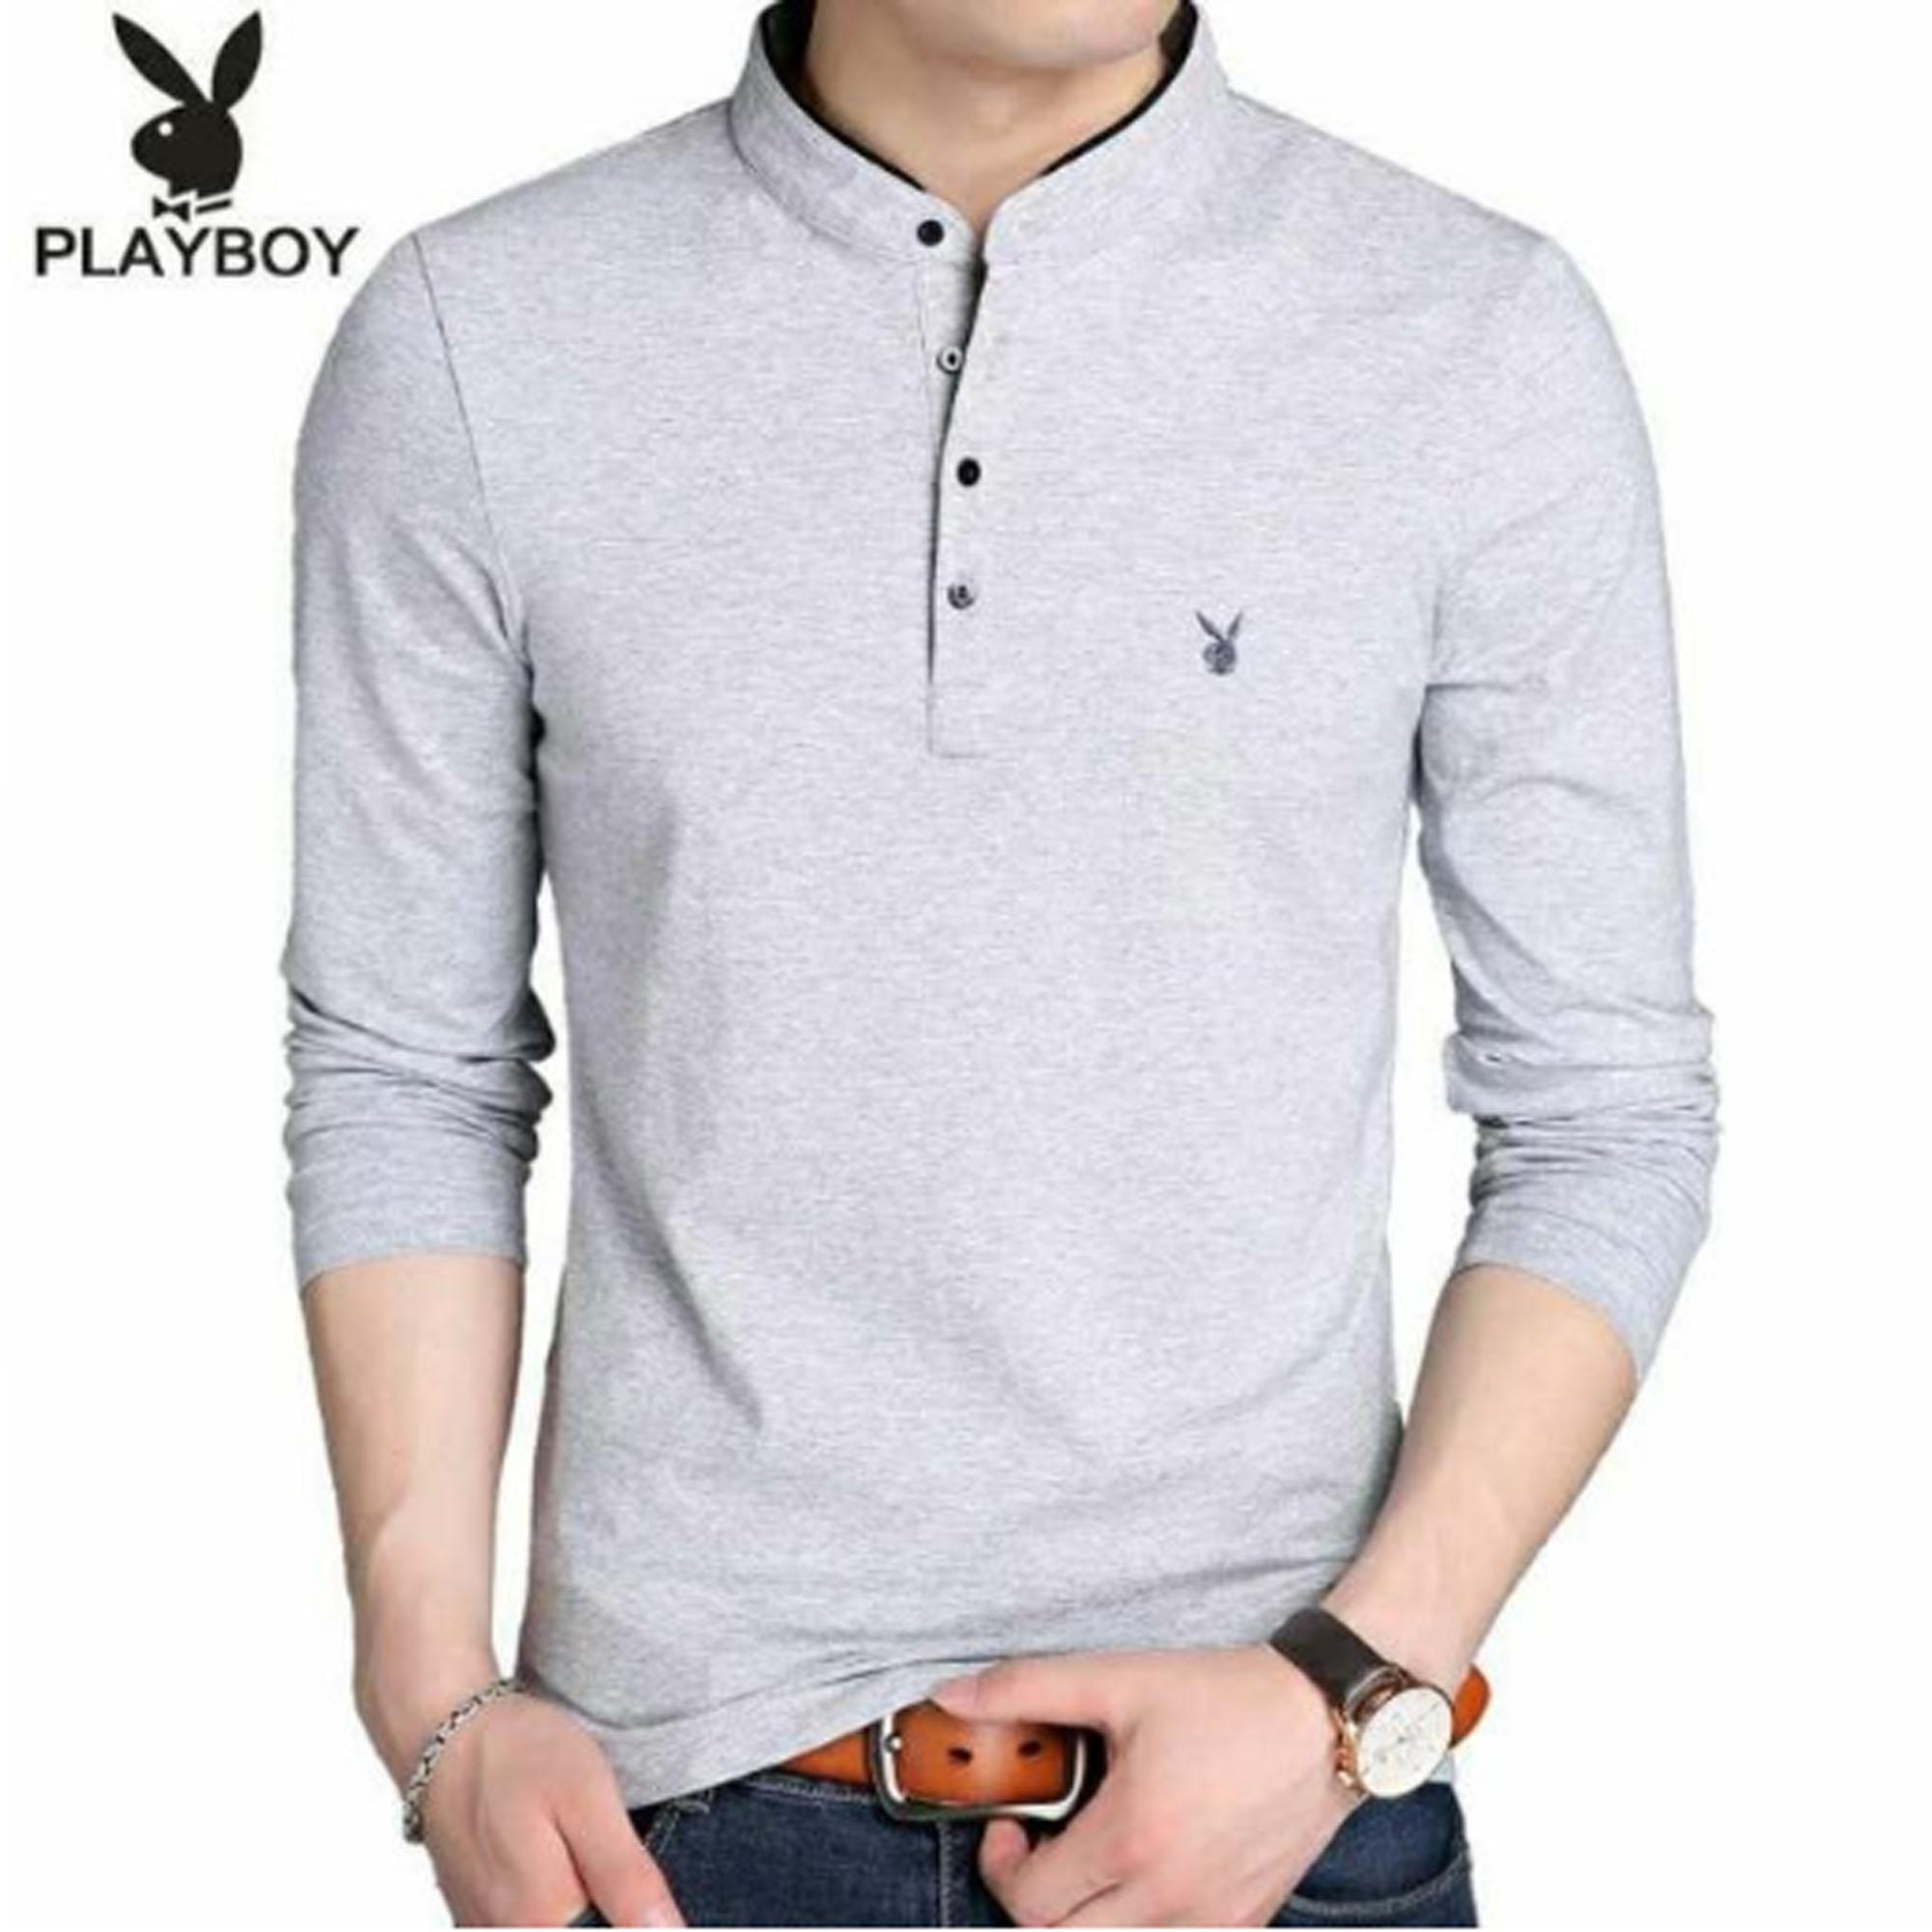 38469629 Mens Longsleeve Medium-Large Cotton Fashion Casual Tops Blouse Shirts Polo  Outfit (Cash on